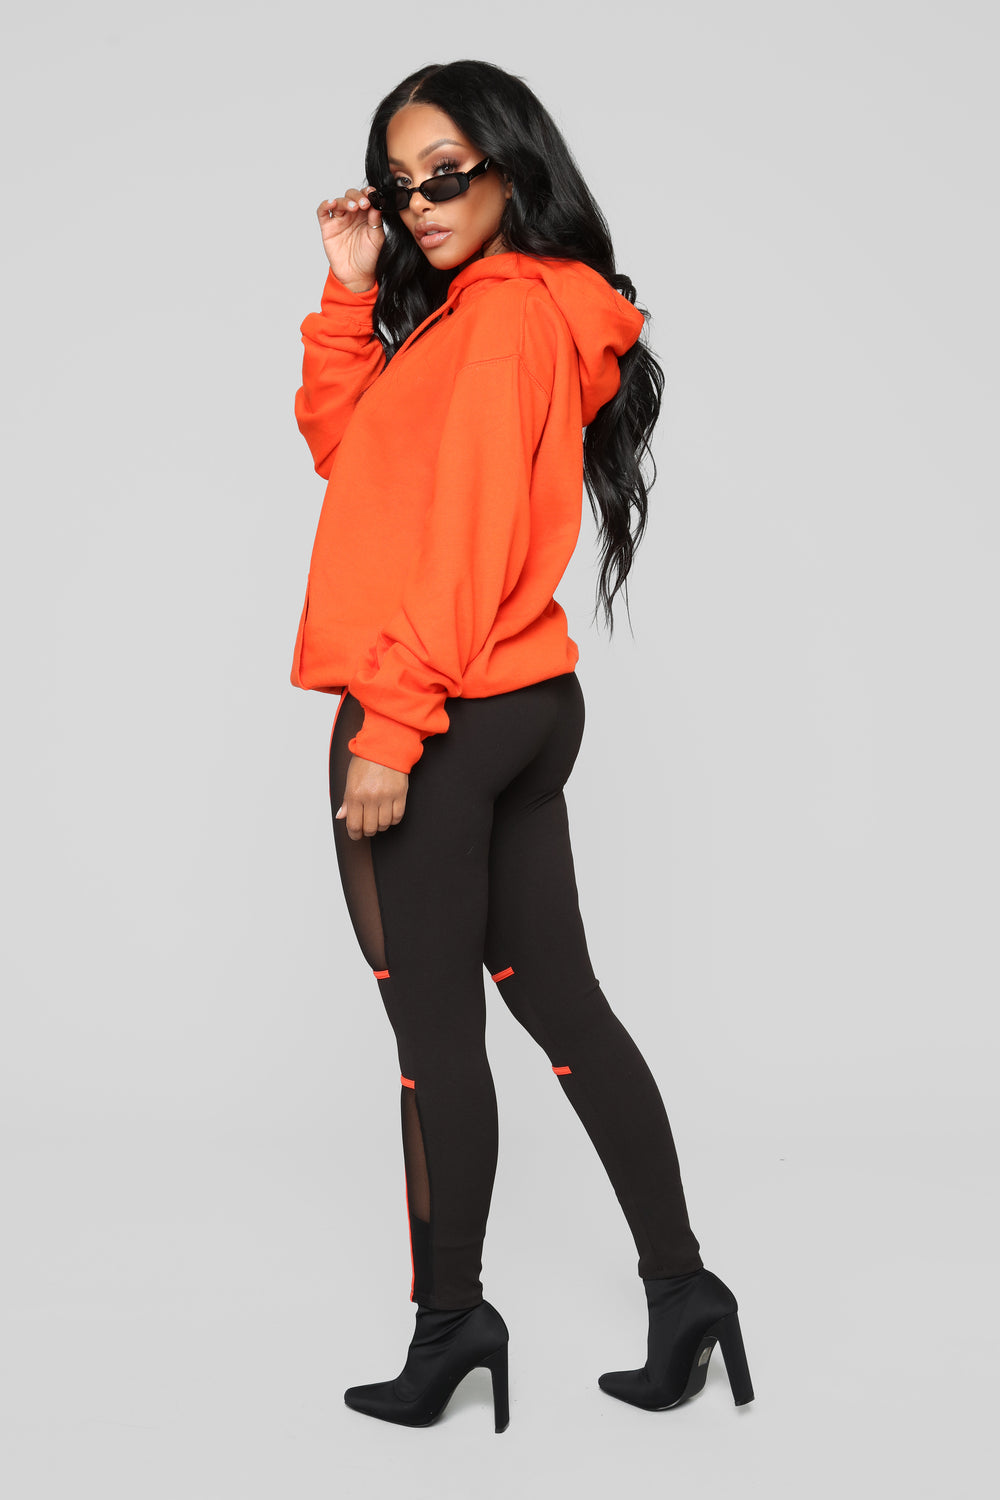 Give Me A Running Start Leggings - Black/Orange